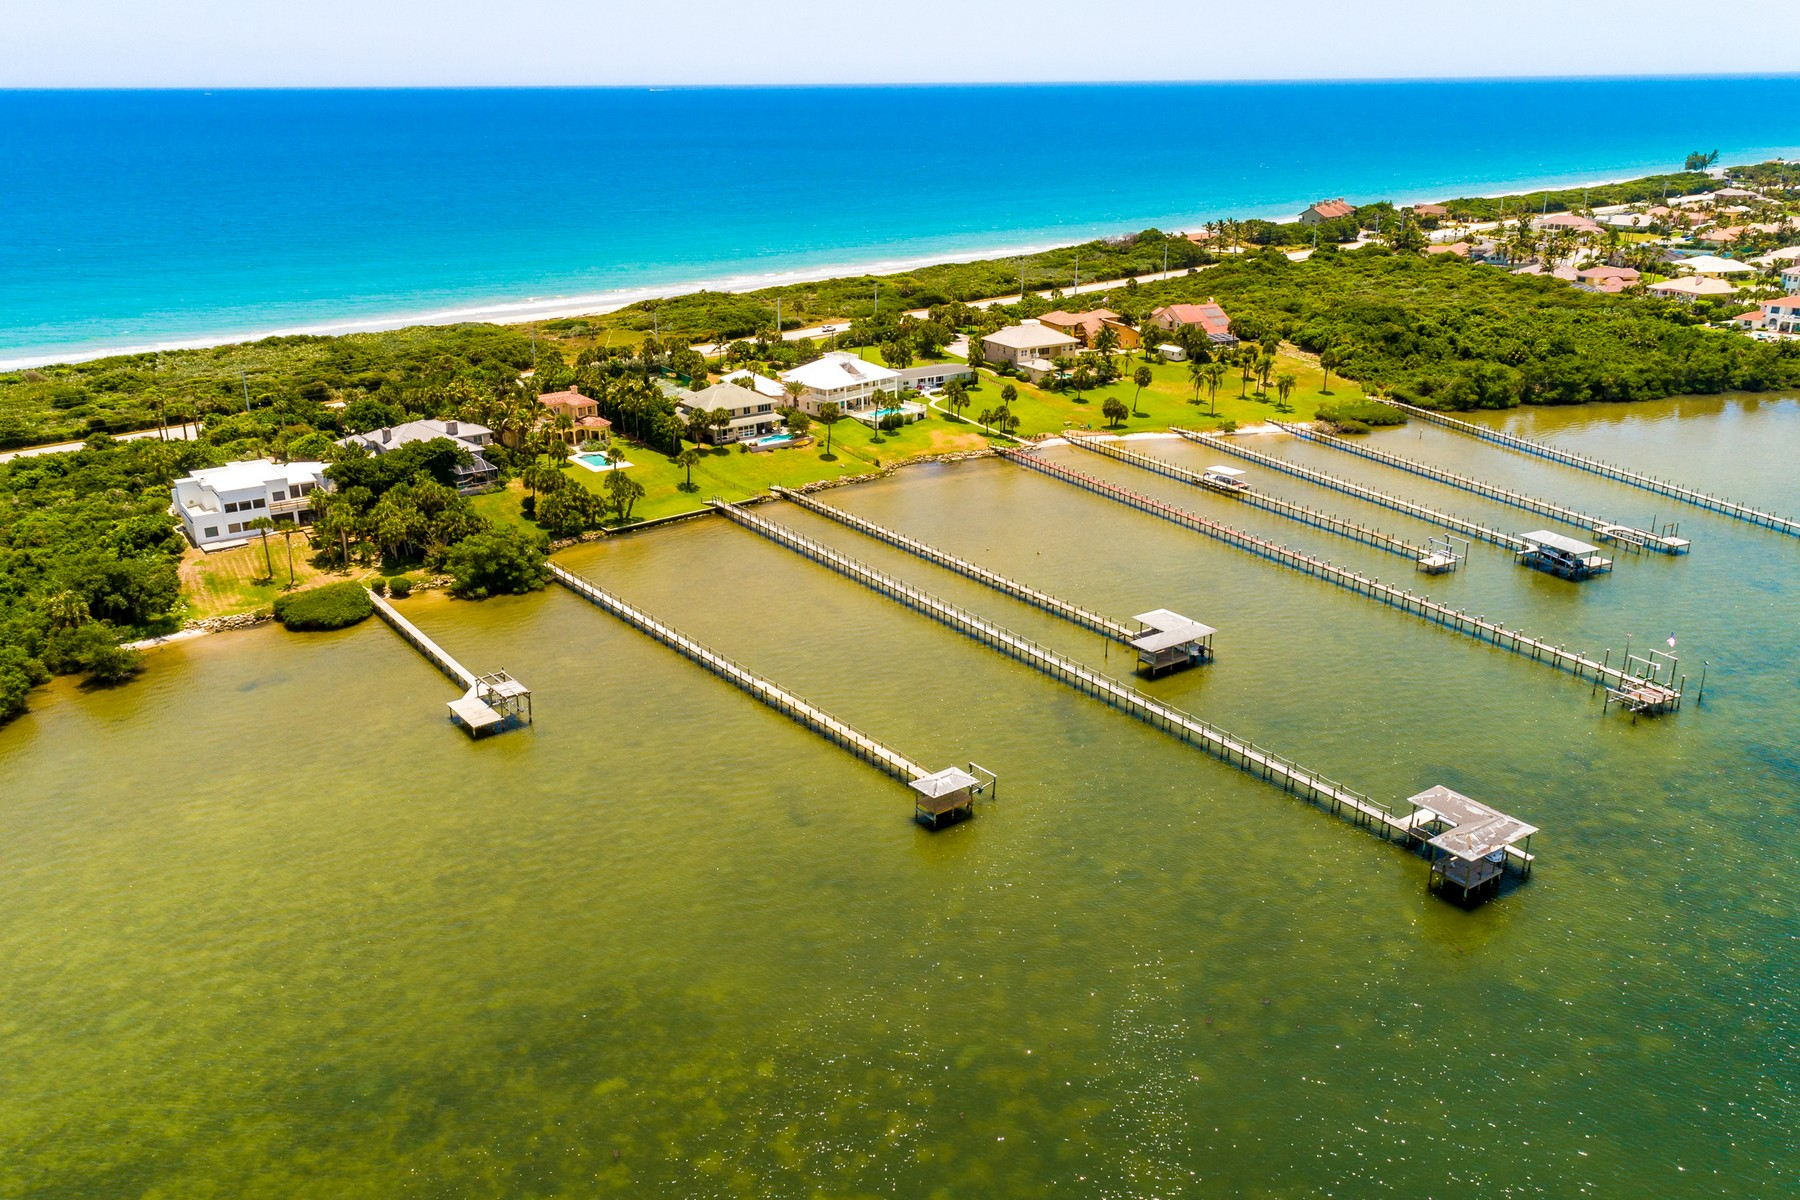 Additional photo for property listing at Melbourne Beach 4650 S. Highway A1A Melbourne Beach, Florida 32951 United States